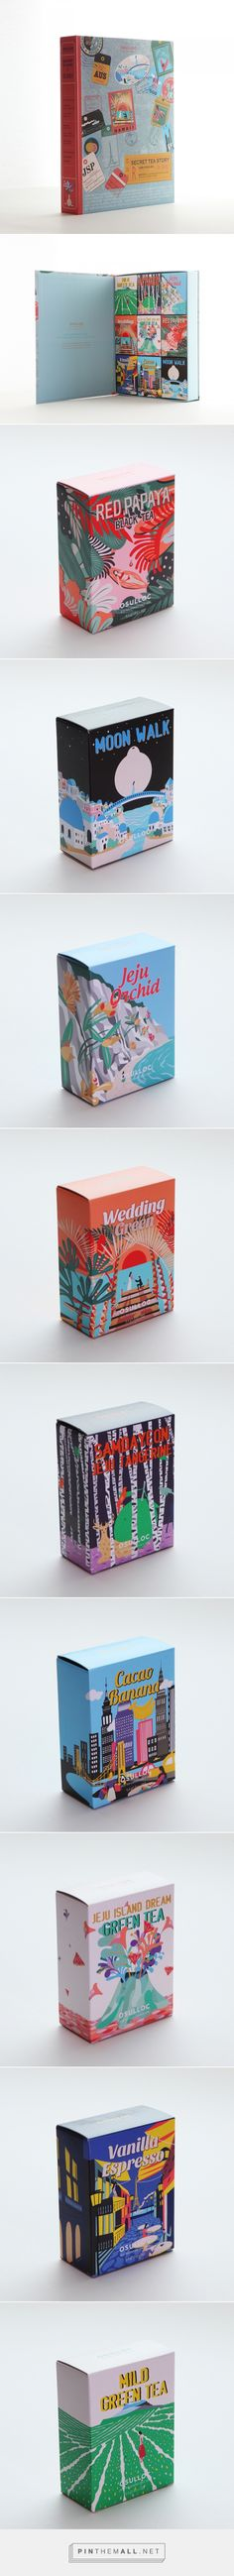 OSULLOC SECRET TEA STORY  | JOSEPH curated by Packaging Diva PD. Tea Packaging from around the world.  오설록 시크릿 티스토리 패키지 작업입니다.